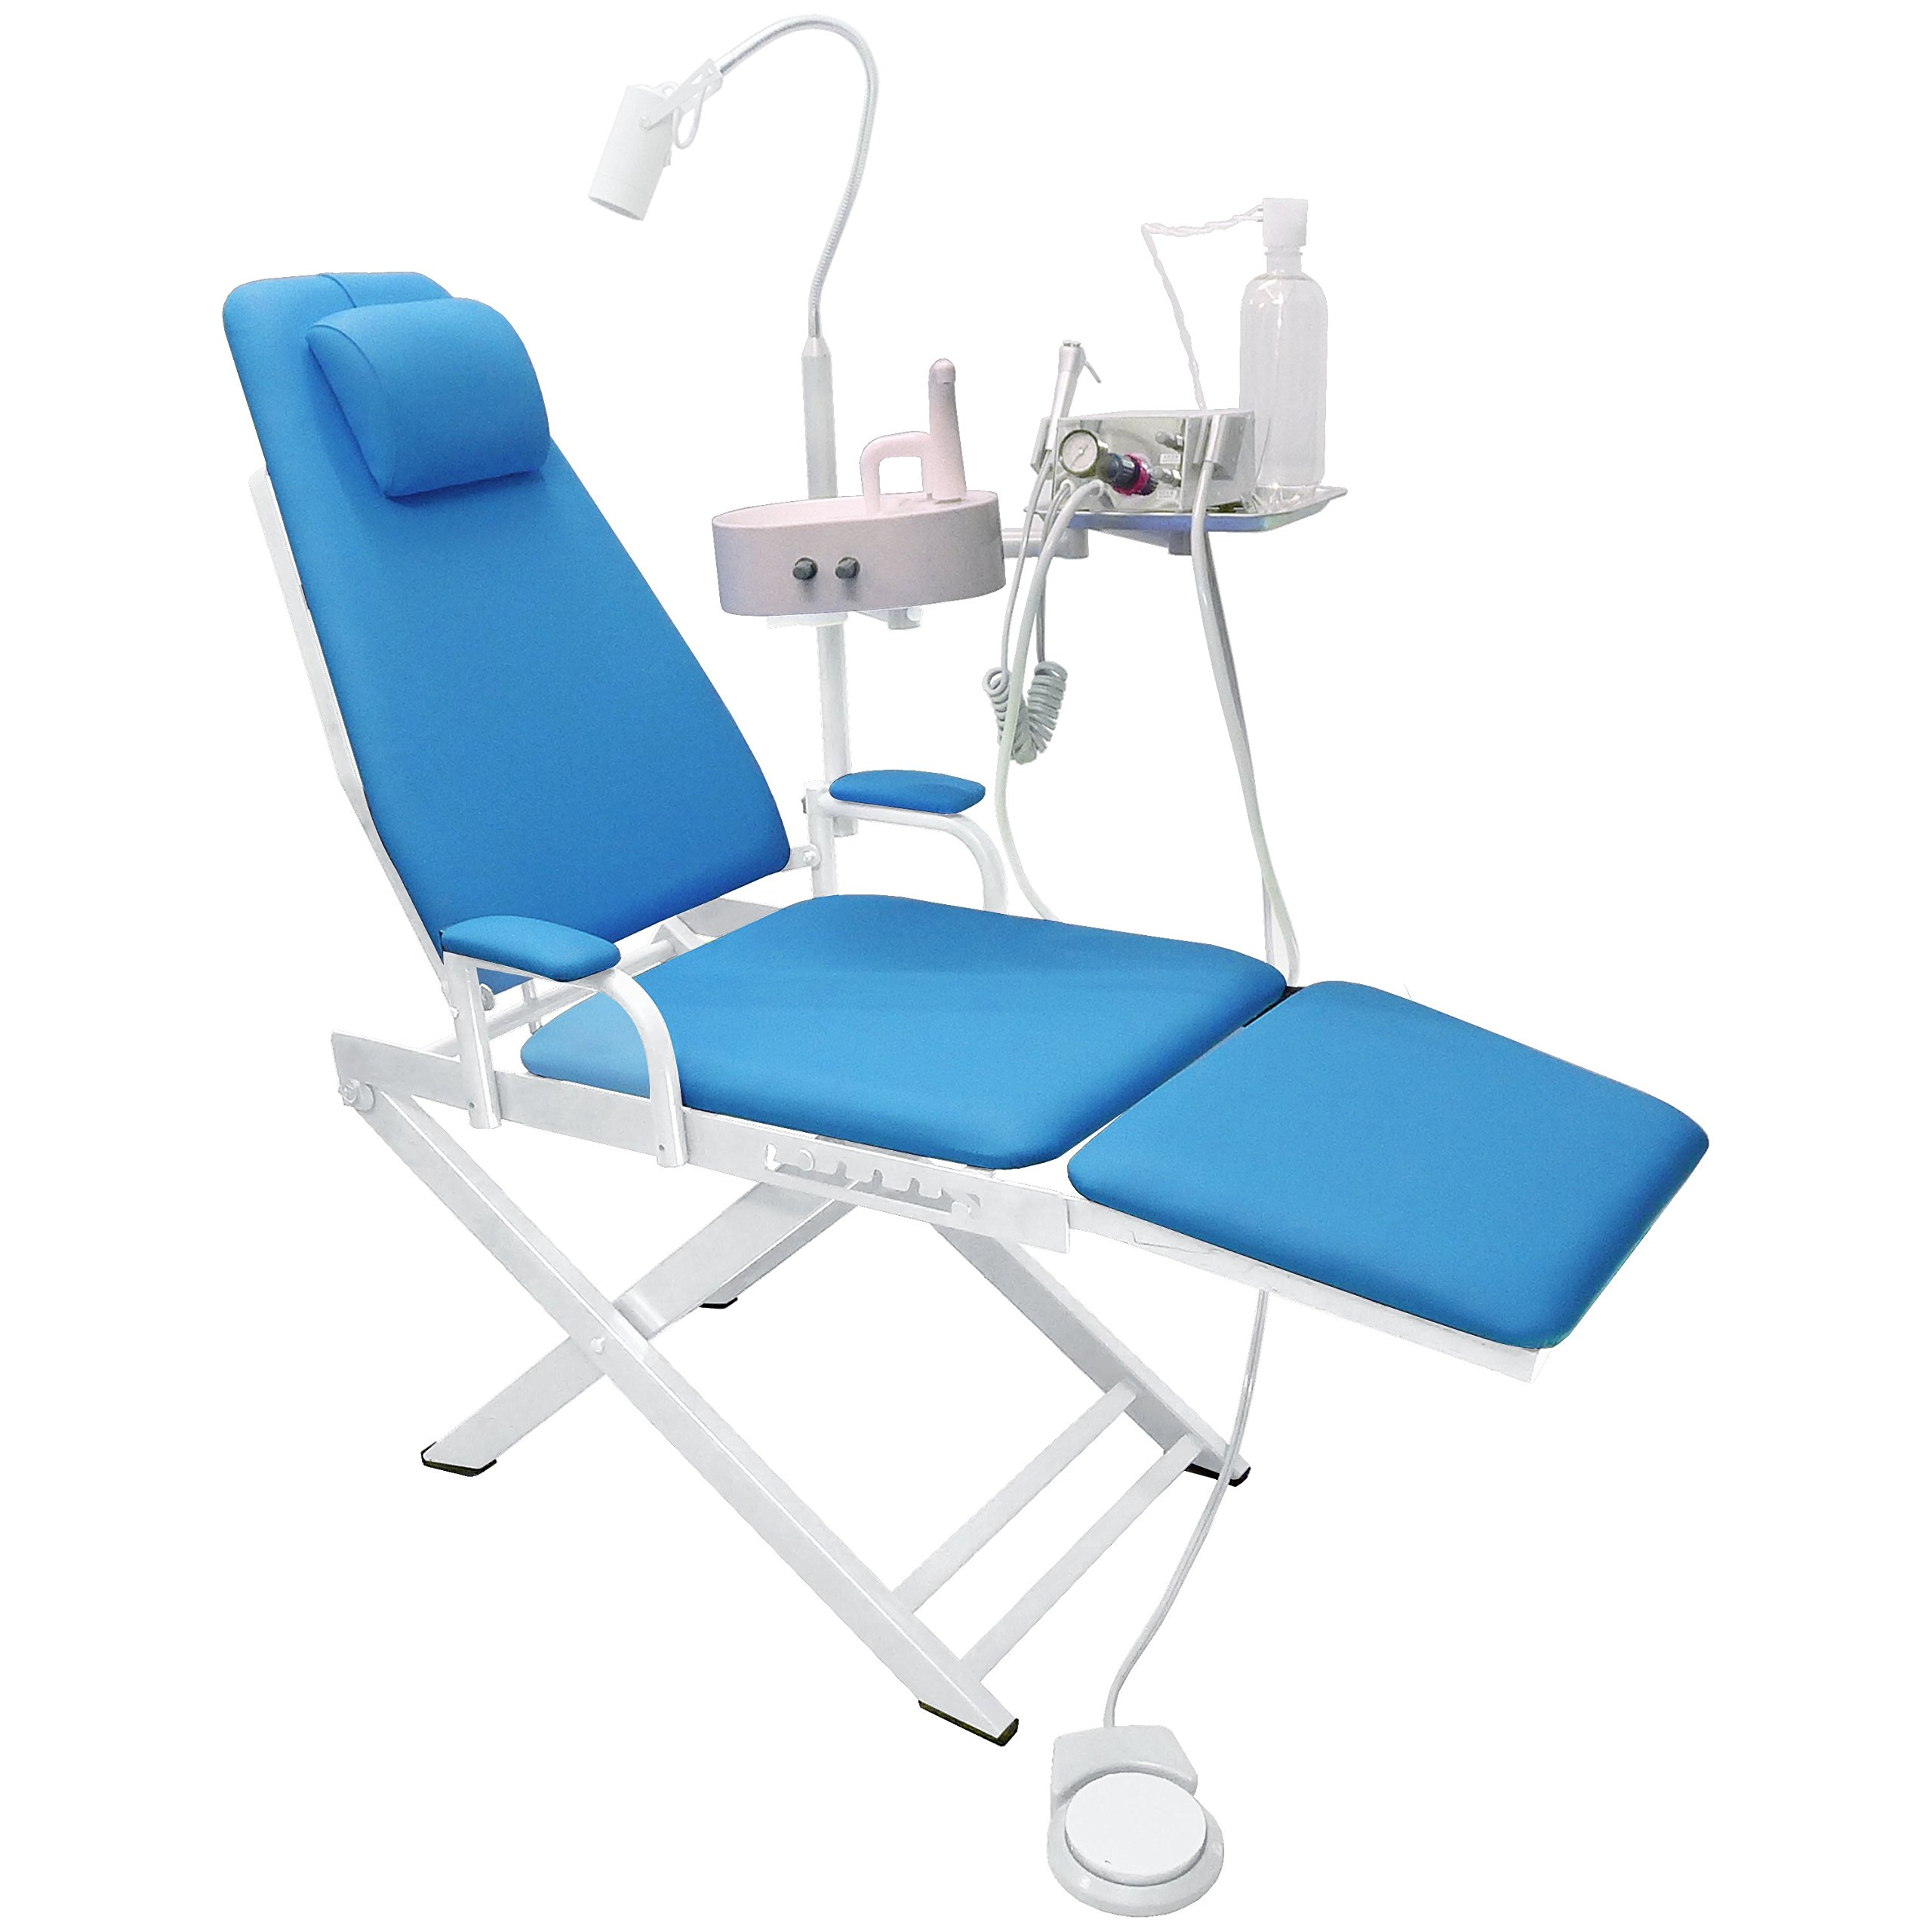 NSKI Portable Folding Chair Mobile Unit+5W LED Surgical Light Lamp+Waste Basin+Water System Supply (4H,Light Blue)